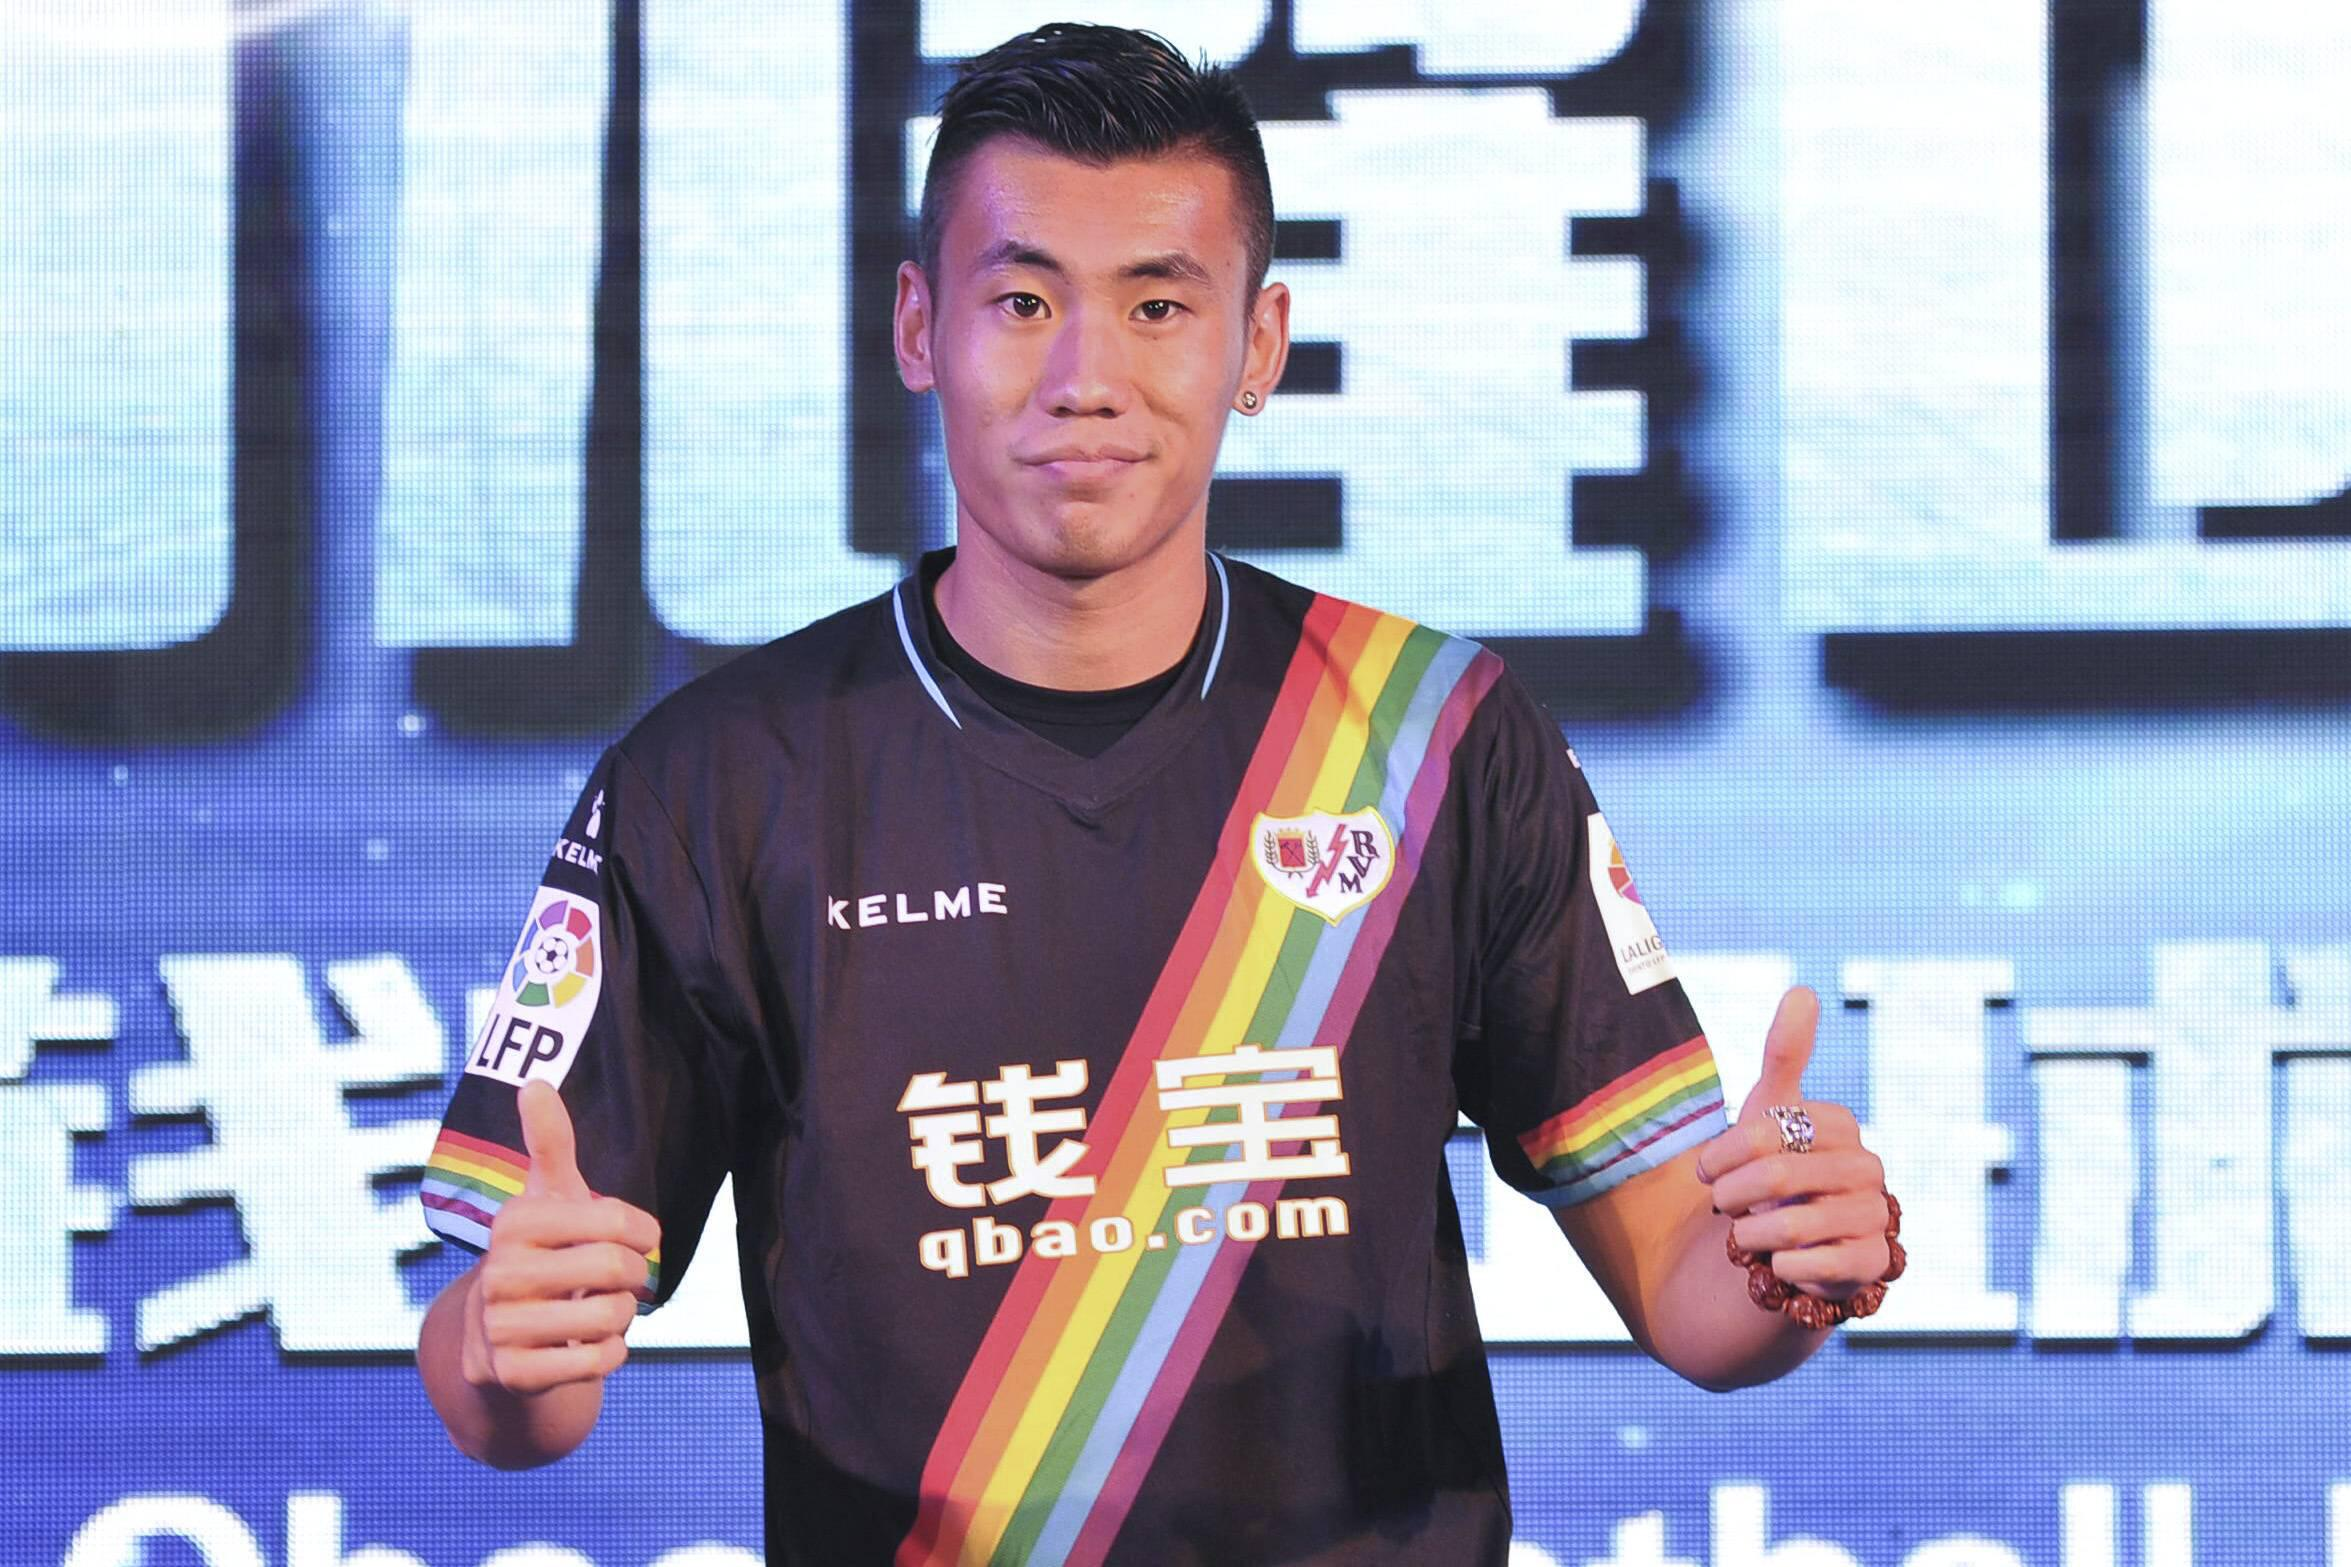 Bild zu Chengdong Zhang, China, Transfer